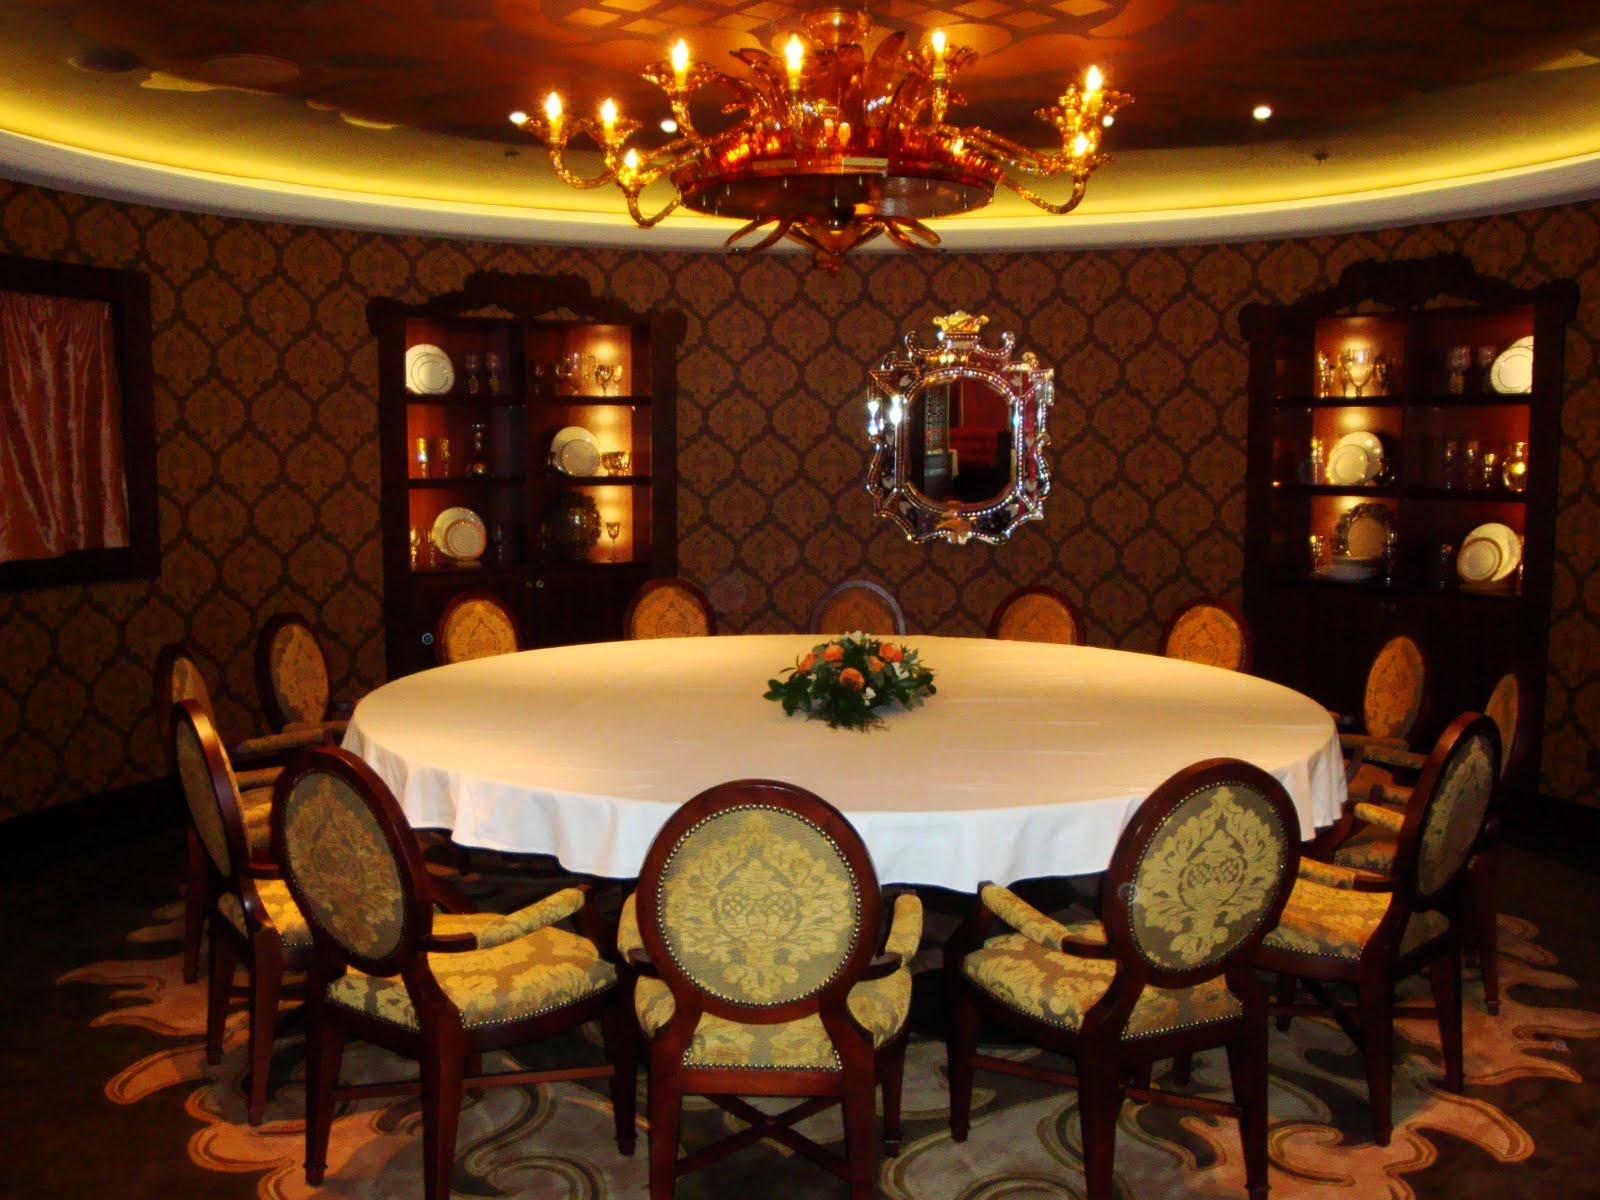 Palo_Dining_Room4.JPG